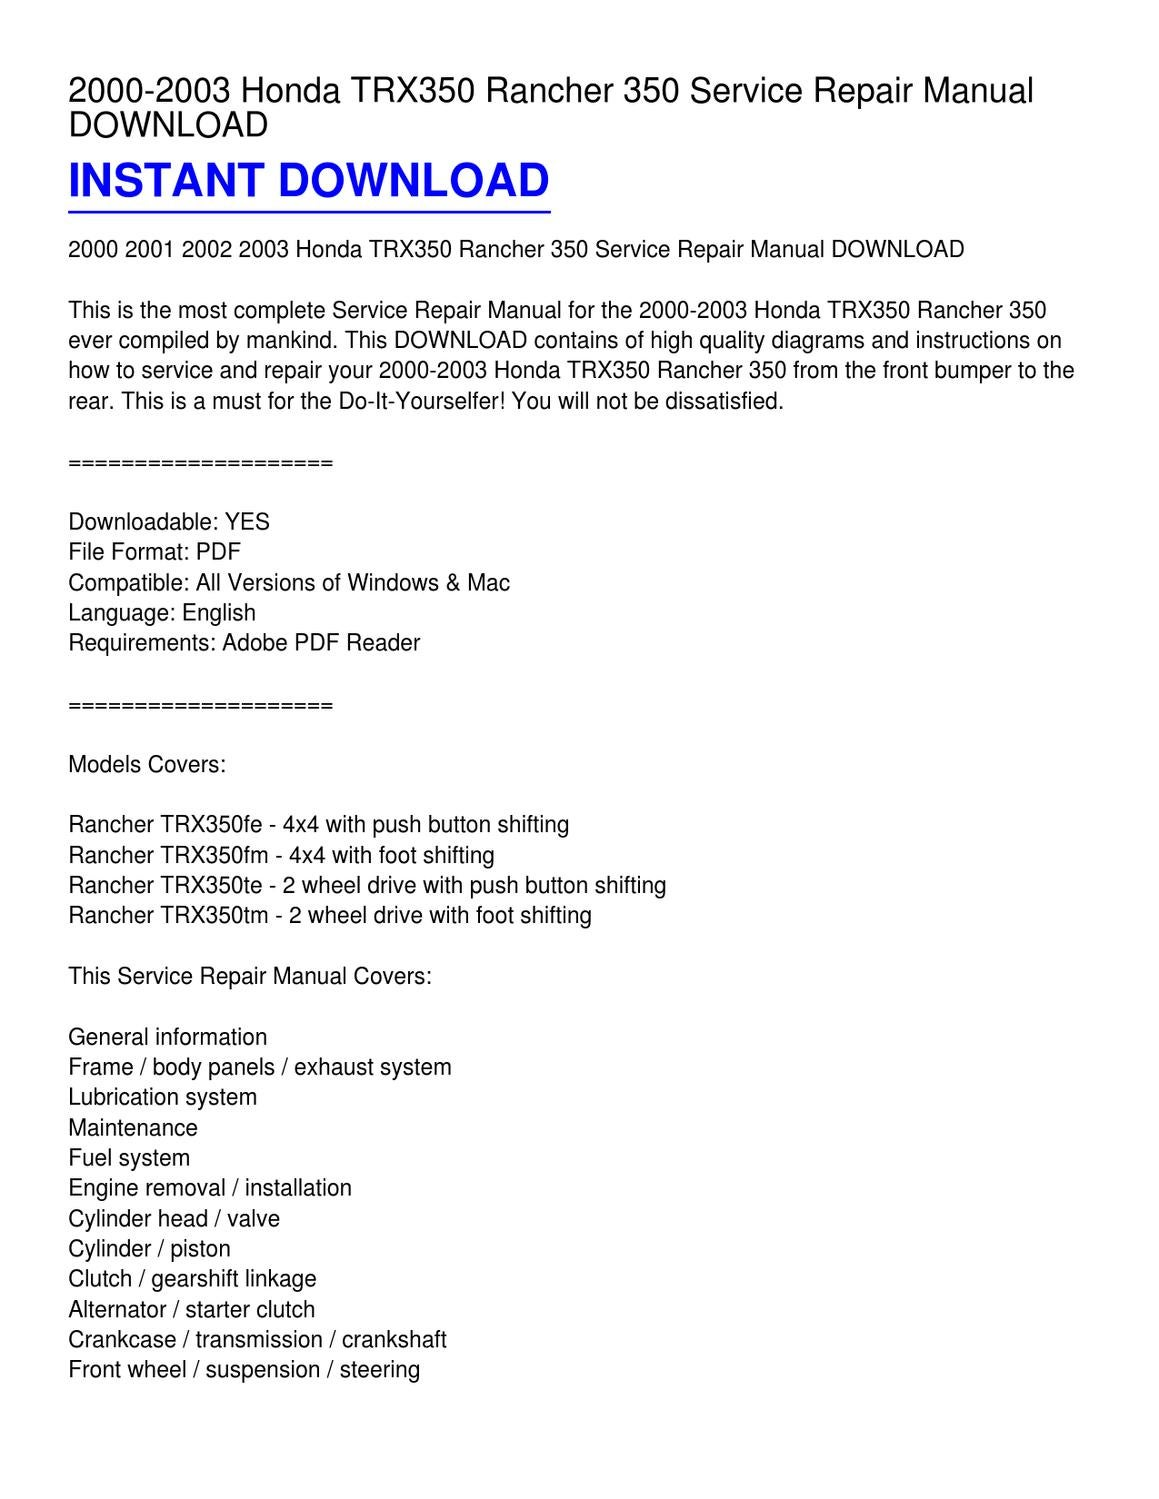 hight resolution of 2000 2003 honda trx350 rancher 350 service repair manual download from kevin fowler